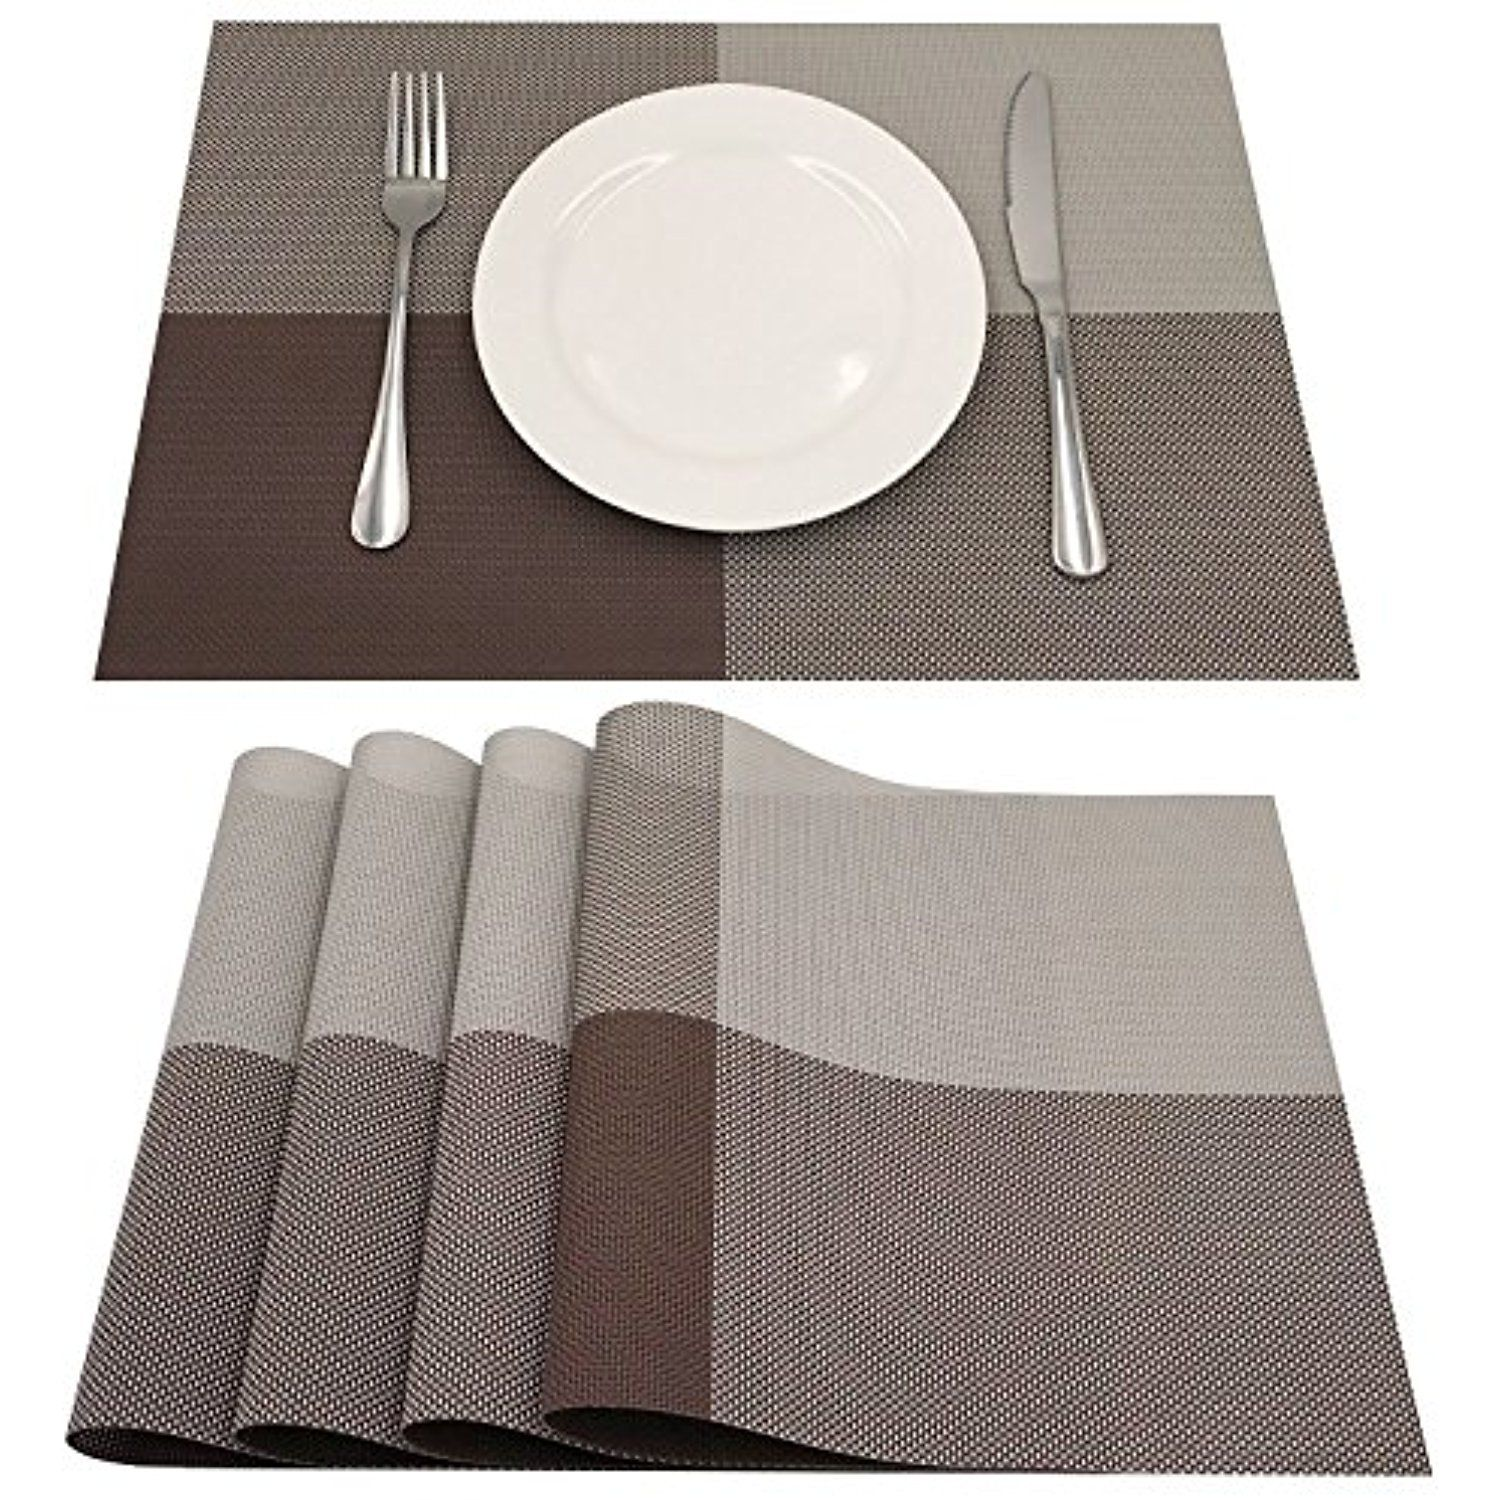 Amzmoo Placemats Set Of 4 Placemats Dining Table Mat Anti Slip